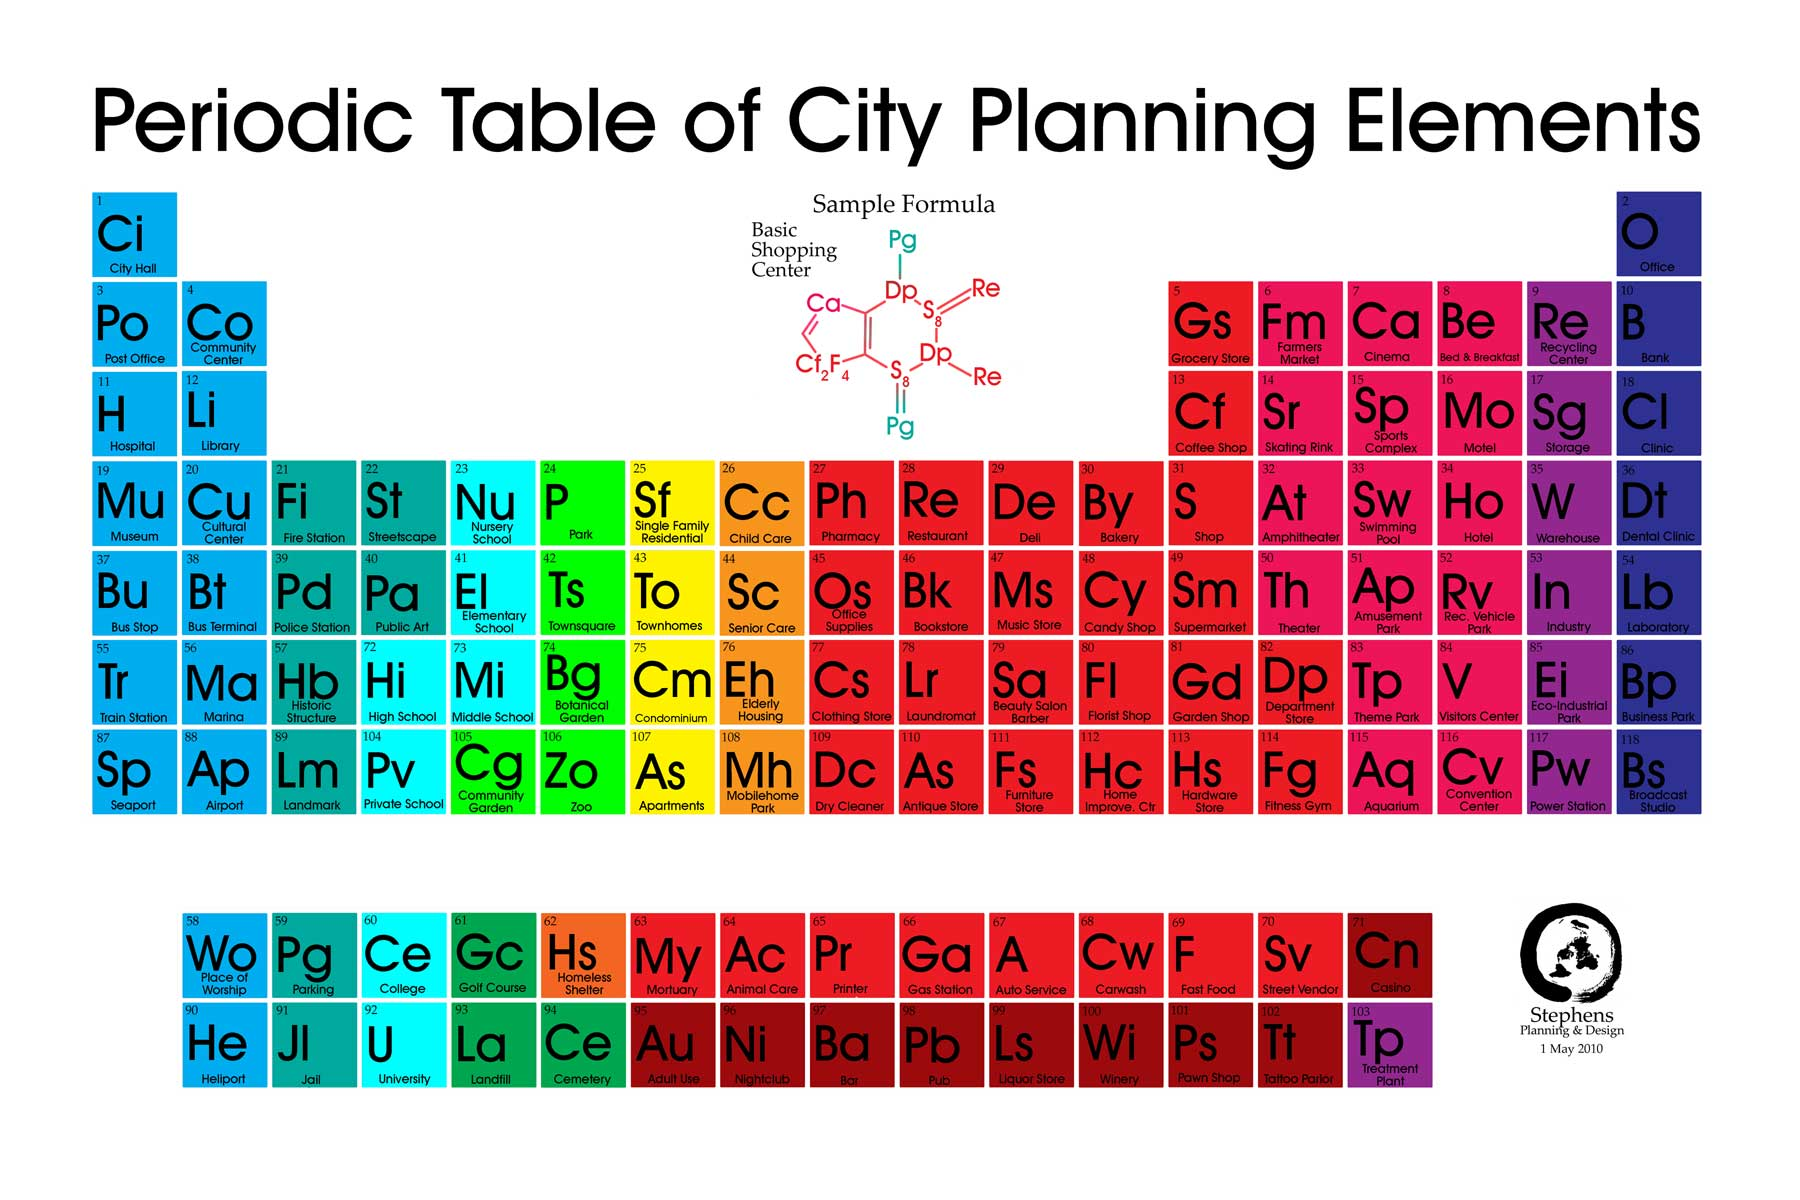 The periodic table of city planning elements features planetizen click the image to see a larger version in a new window biocorpaavc Gallery